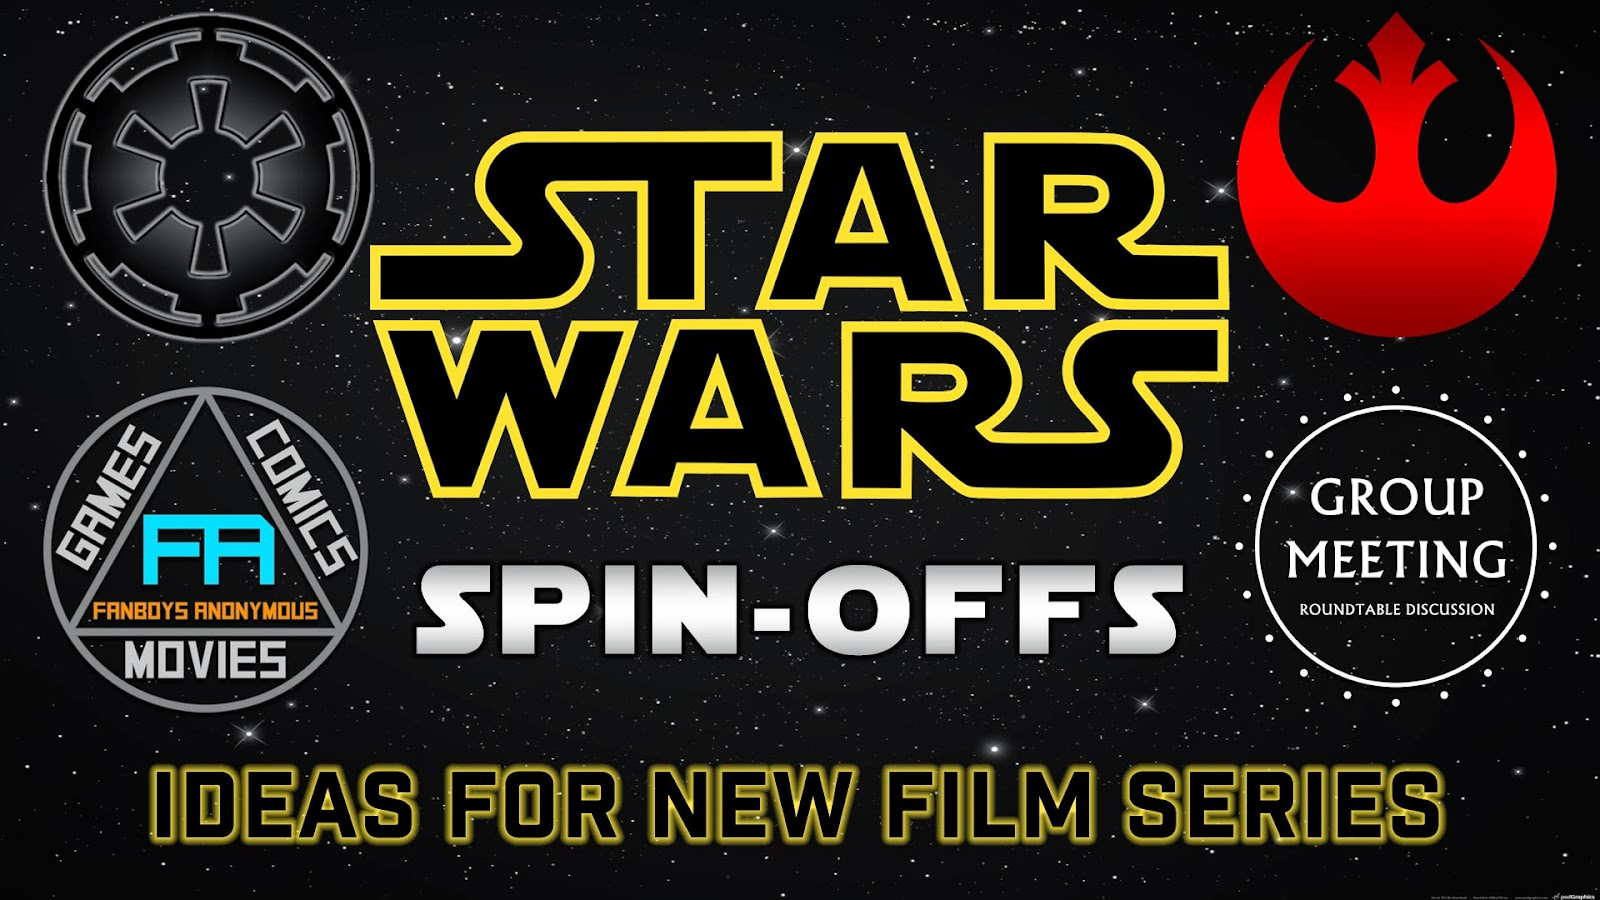 Star Wars spinoff movie ideas